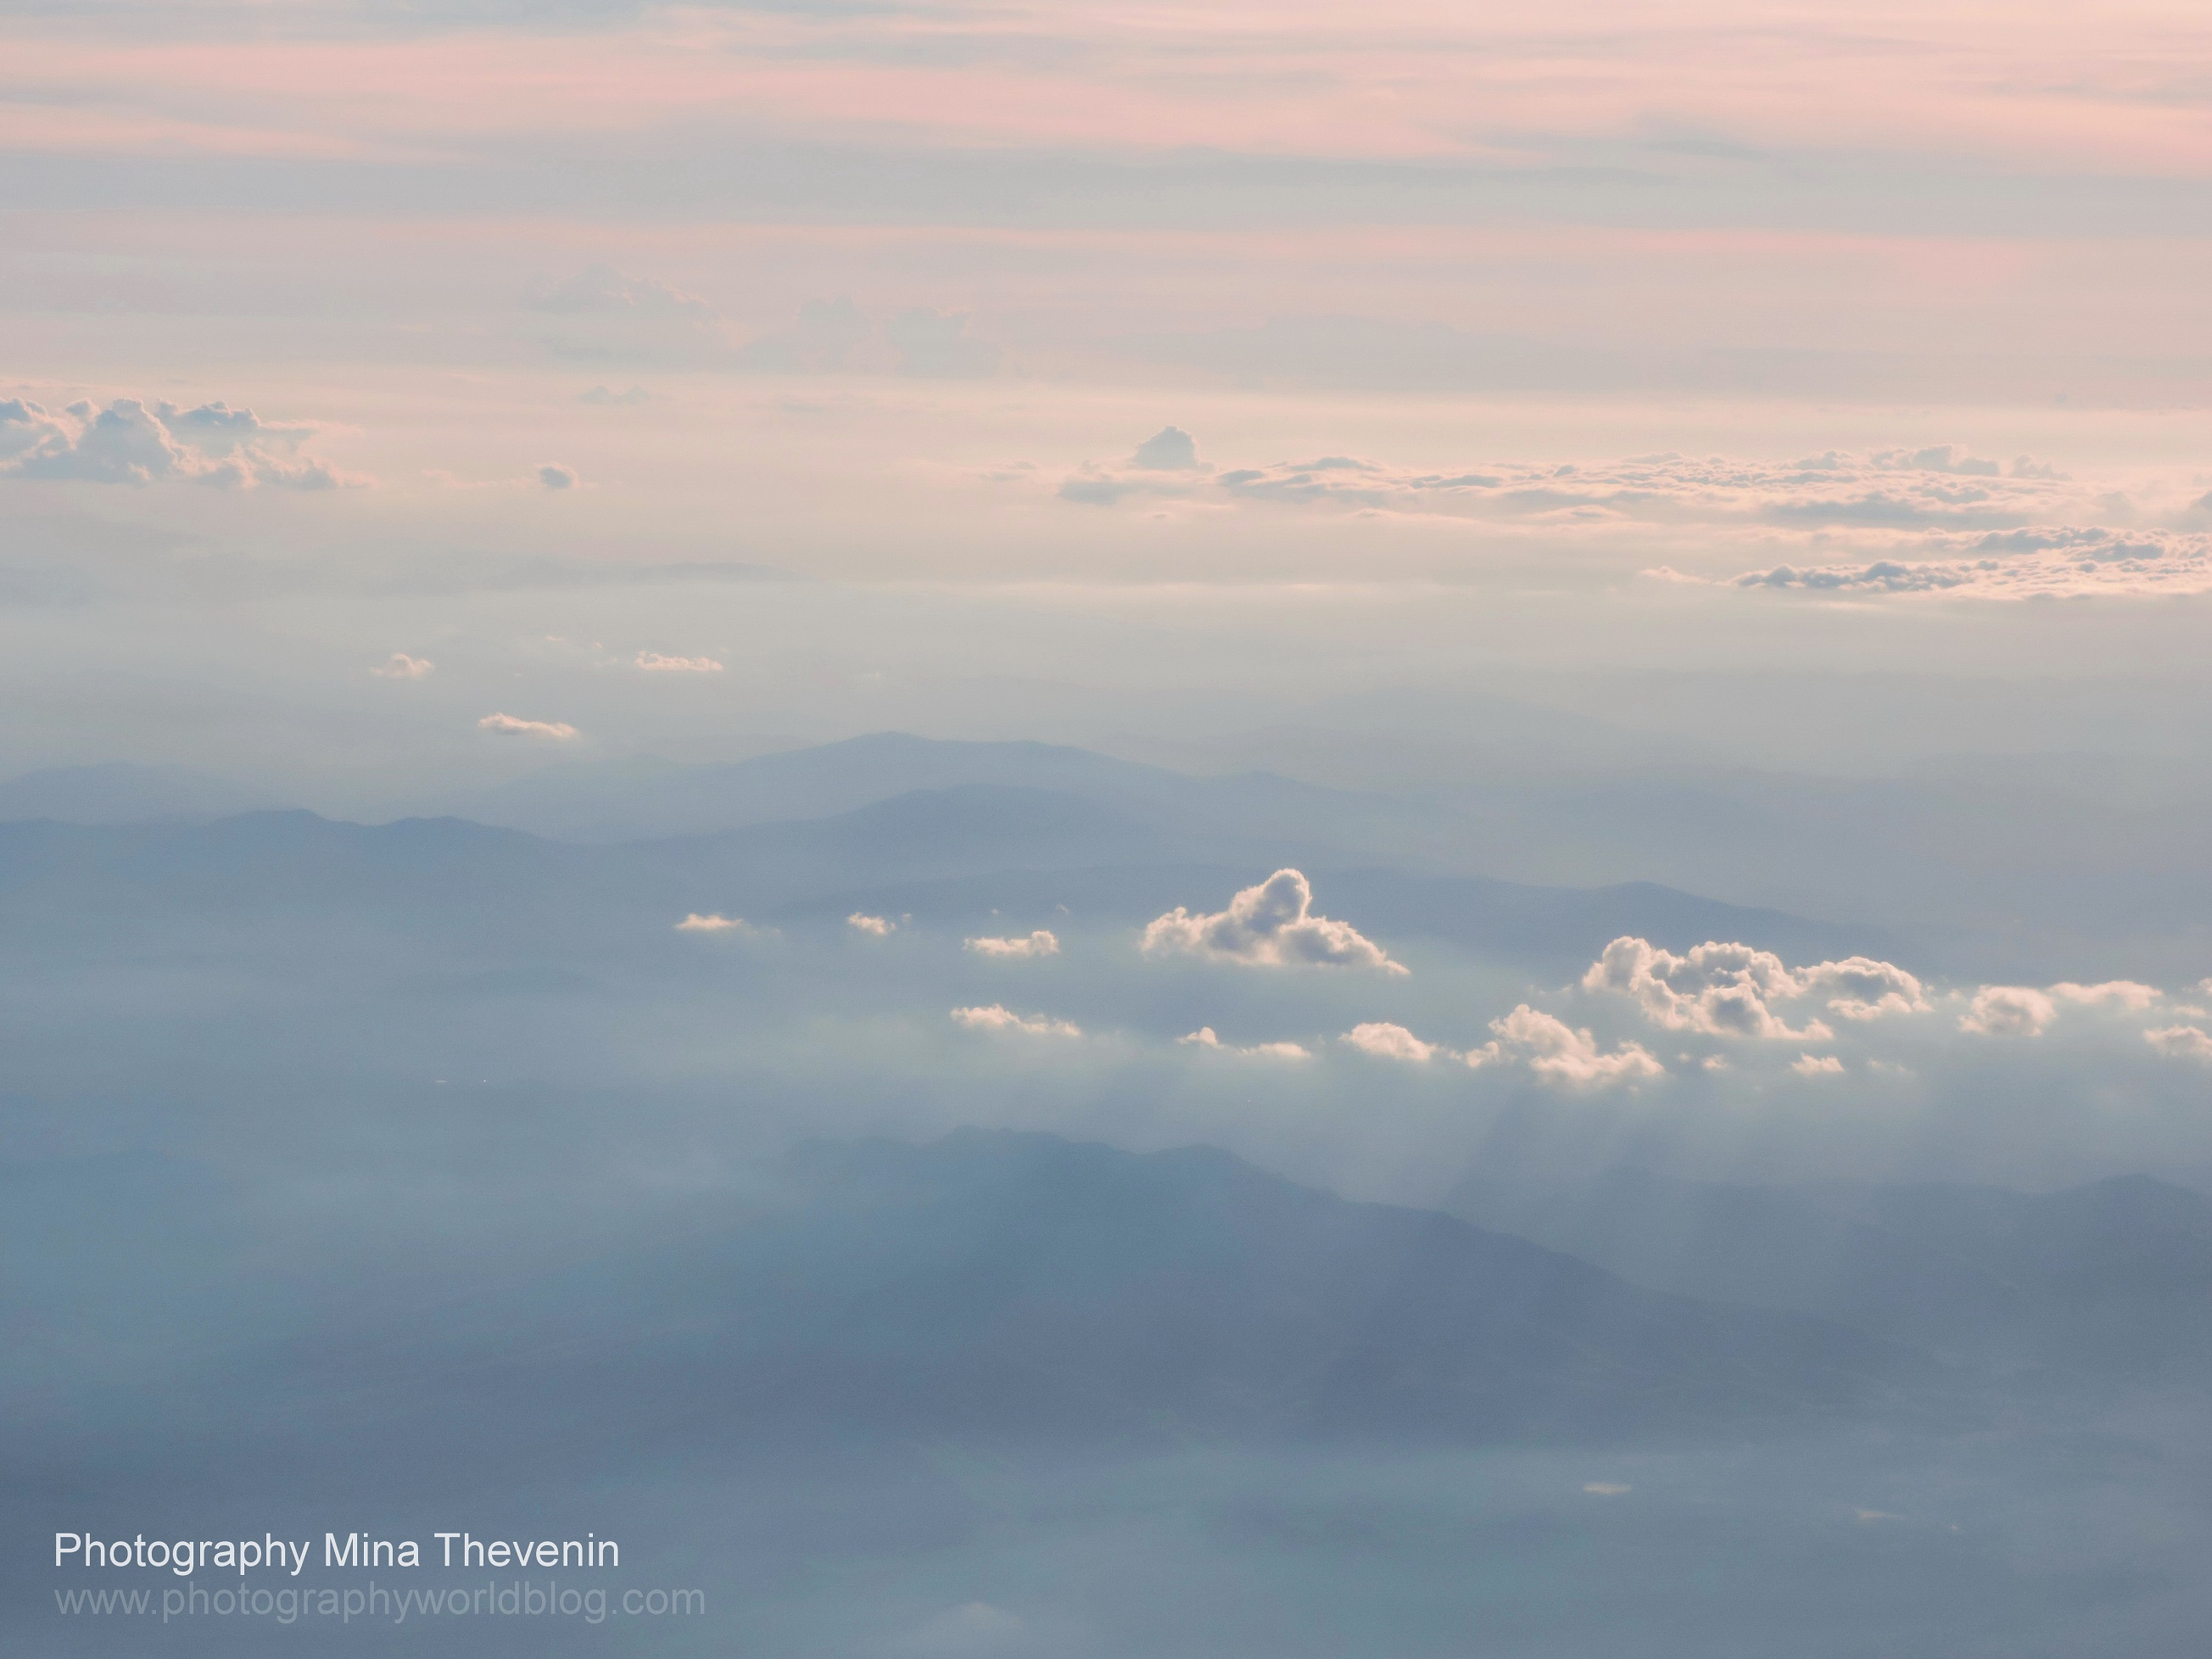 © Appalachian Mountain Range in Sunset Clouds. Photograph by Mina Thevenin. Photography World Online Publication. www.photographyworld.org